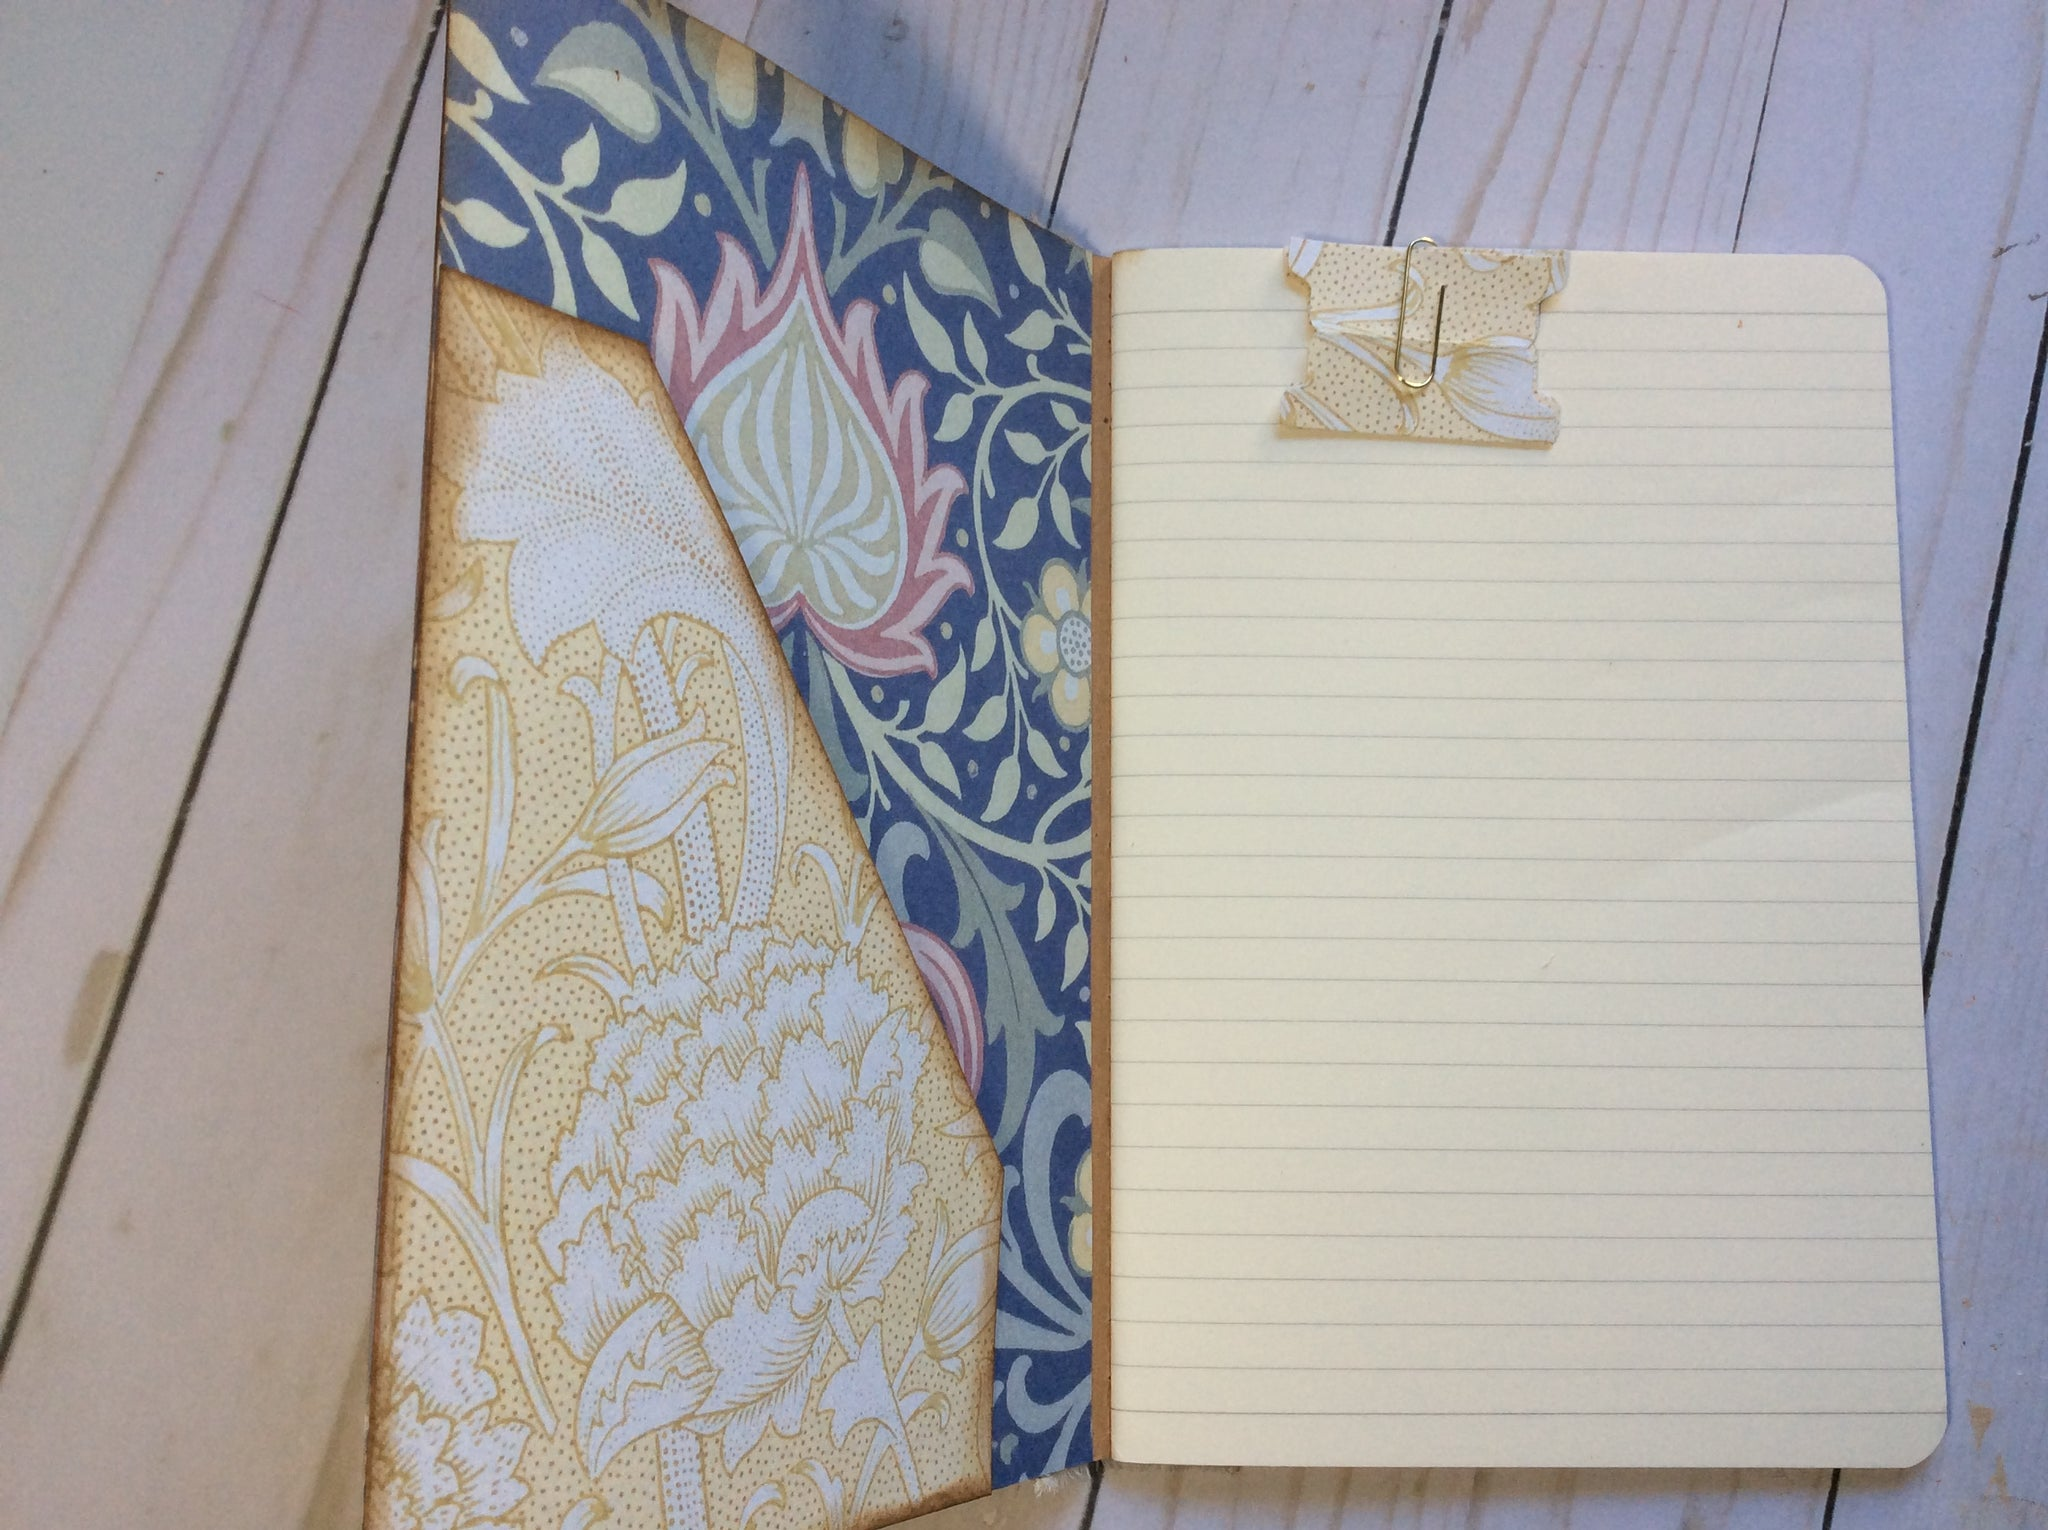 William Morris Altered Notebook #1 by Jo Ann